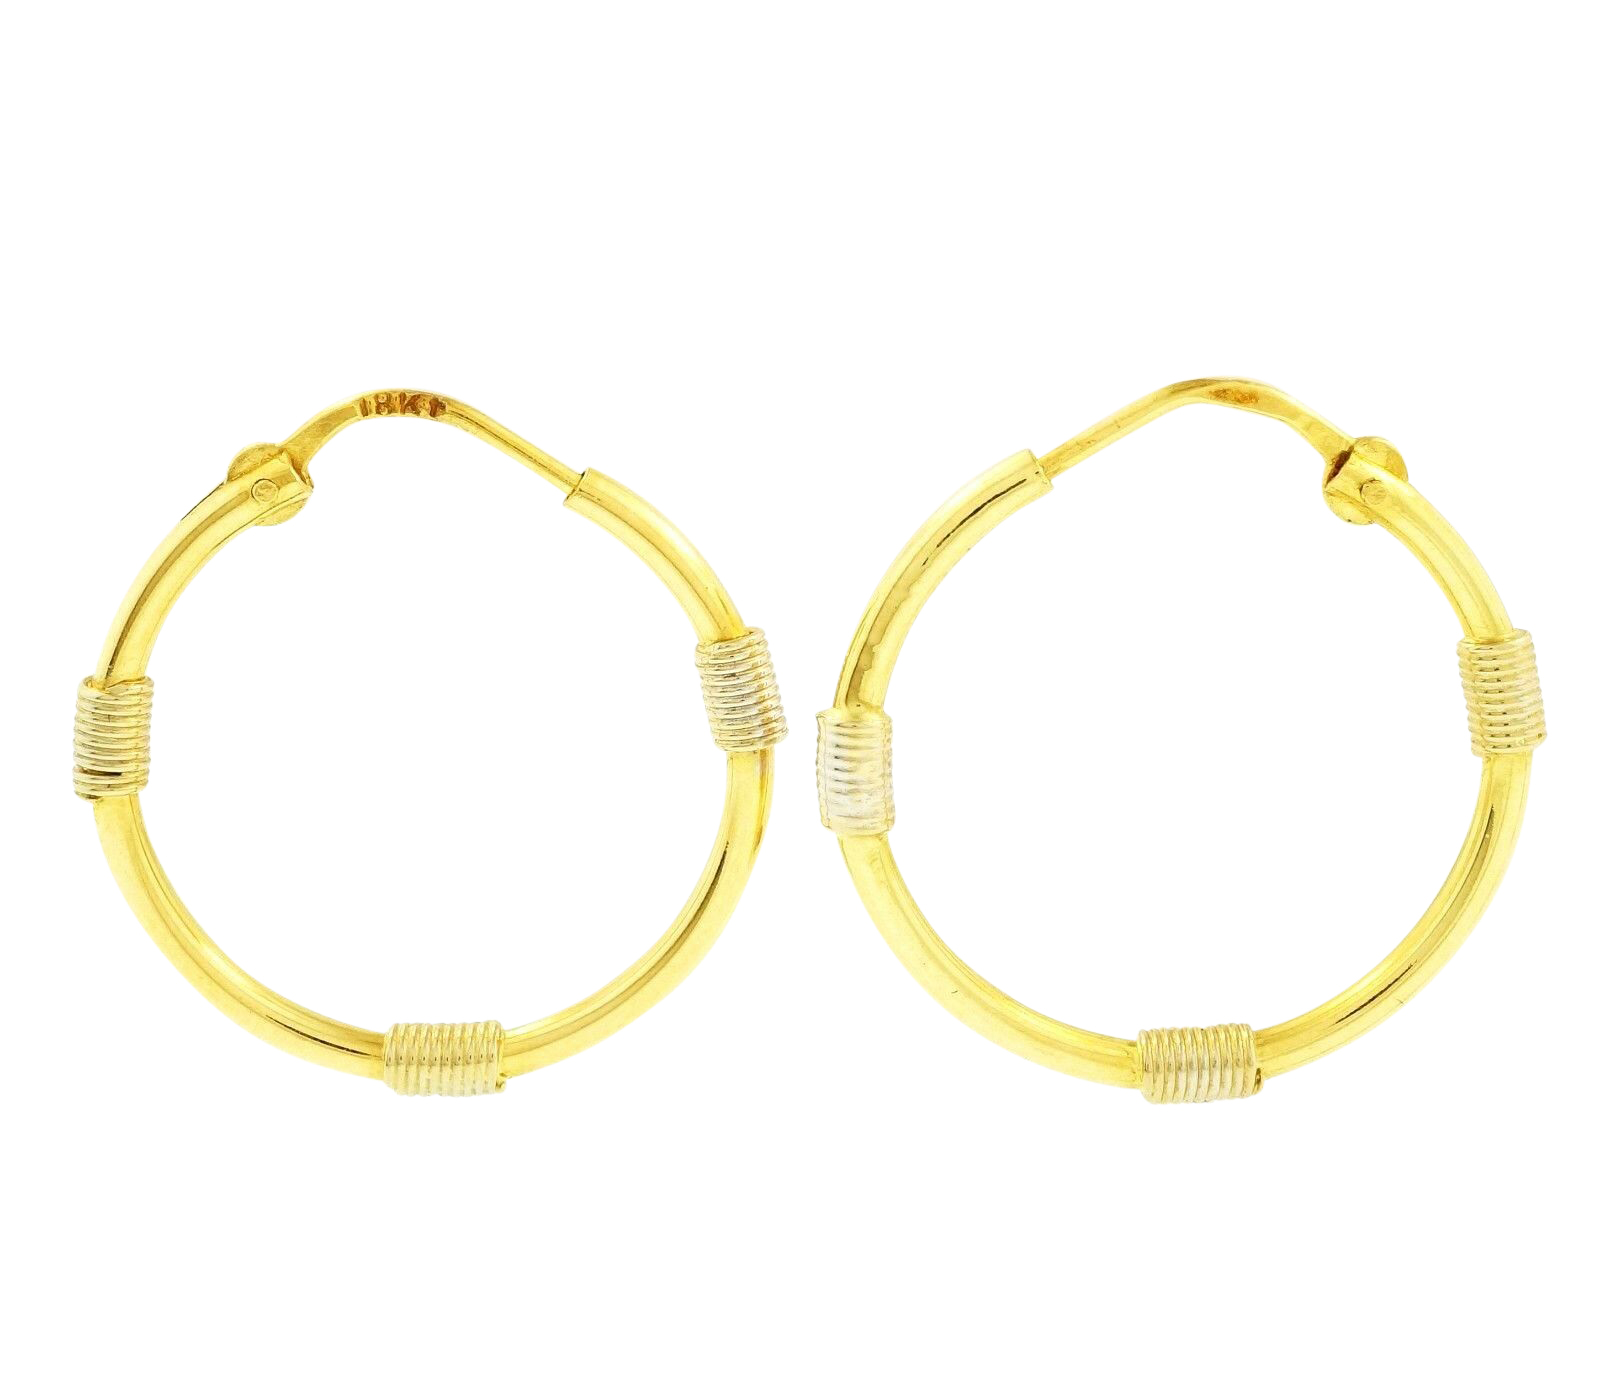 18carat Yellow And White Gold Hoop Earrings 21mm